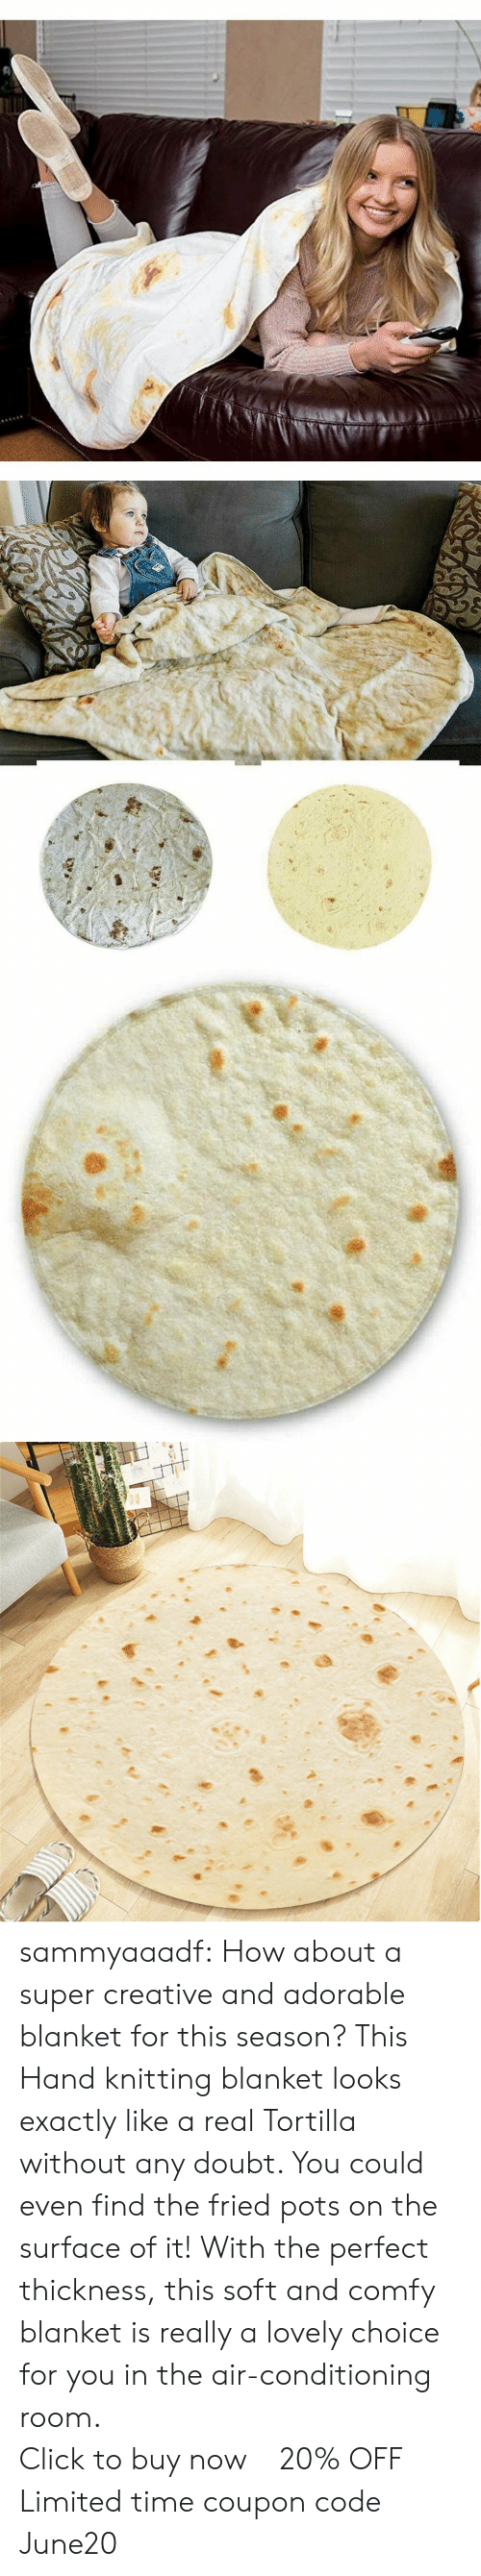 Click, Tumblr, and Blog: sammyaaadf: How about a super creative and adorable blanket for this season? This Hand knitting blanket looks exactly like a real Tortilla without any doubt. You could even find the fried pots on the surface of it! With the perfect thickness, this soft and comfy blanket is really a lovely choice for you in the air-conditioning room.                    Click to buy now !  20% OFF Limited time coupon code : June20